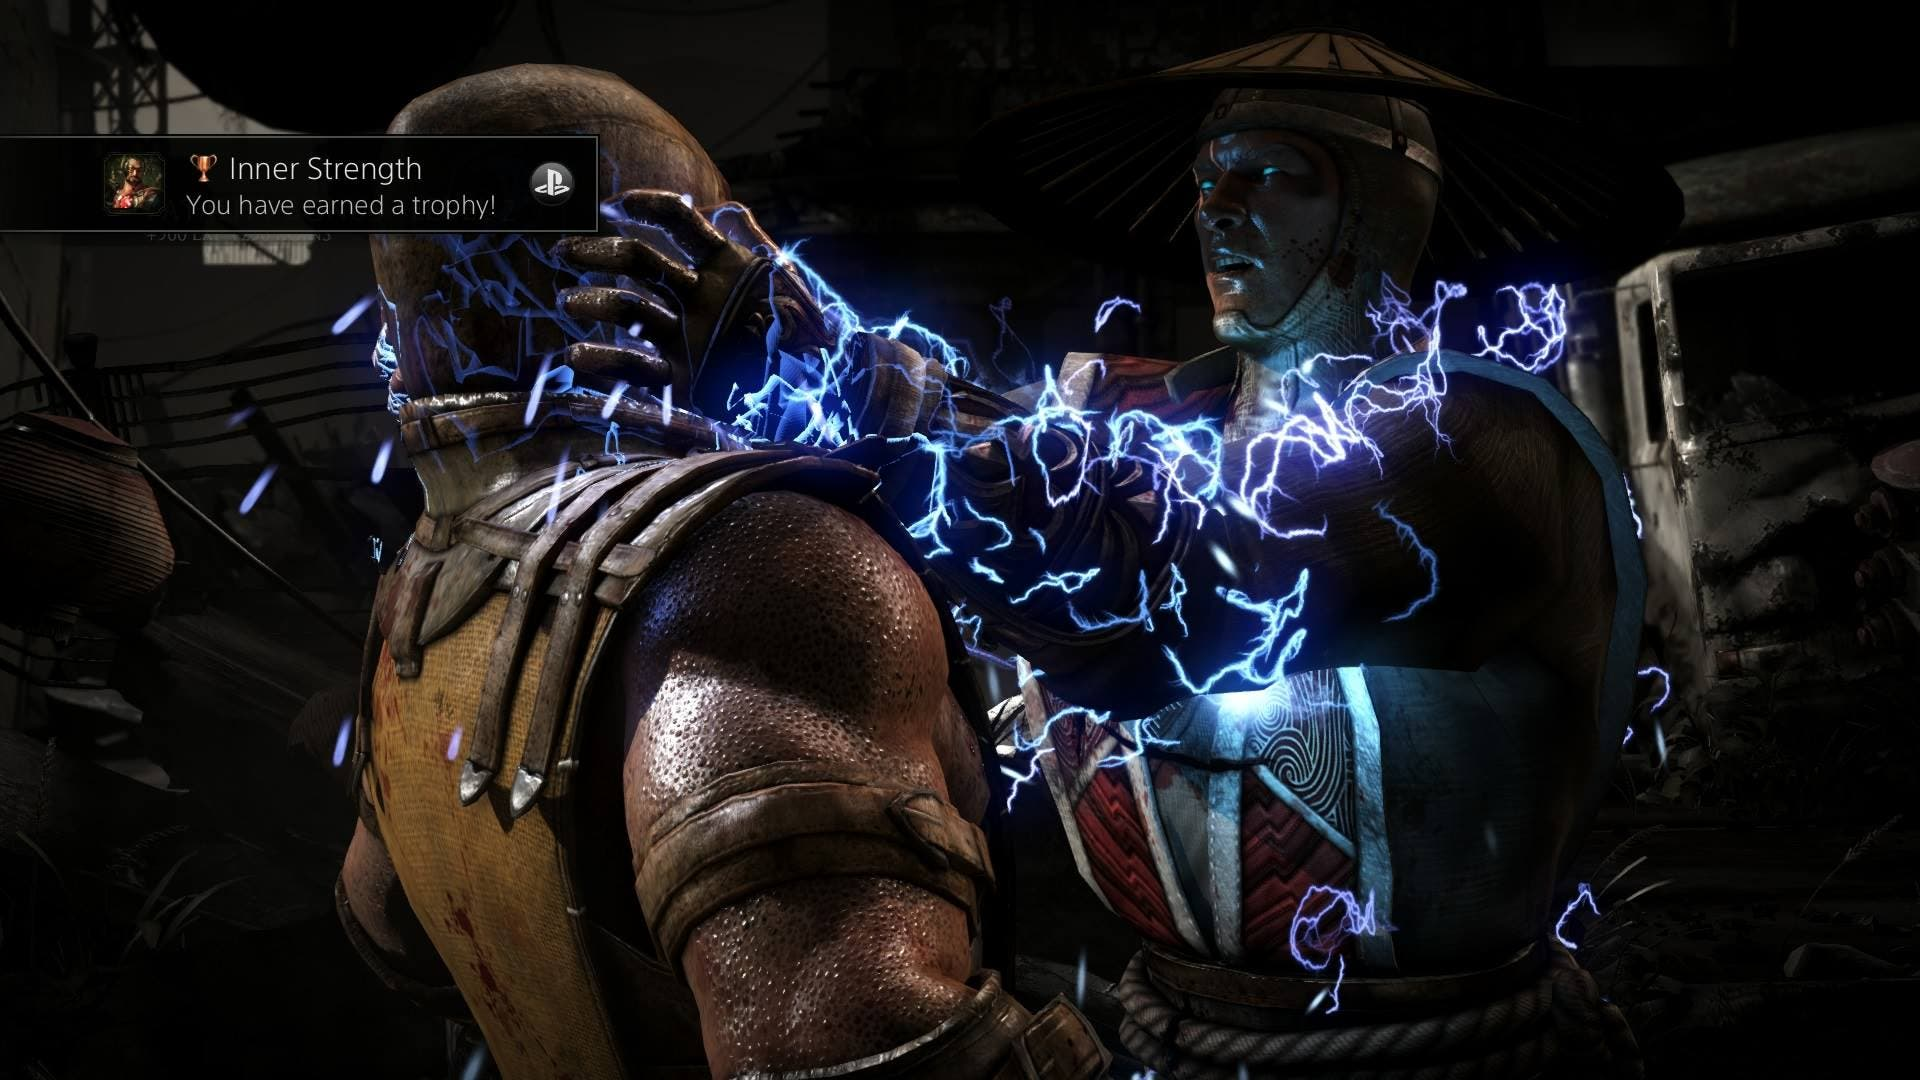 MKX featured